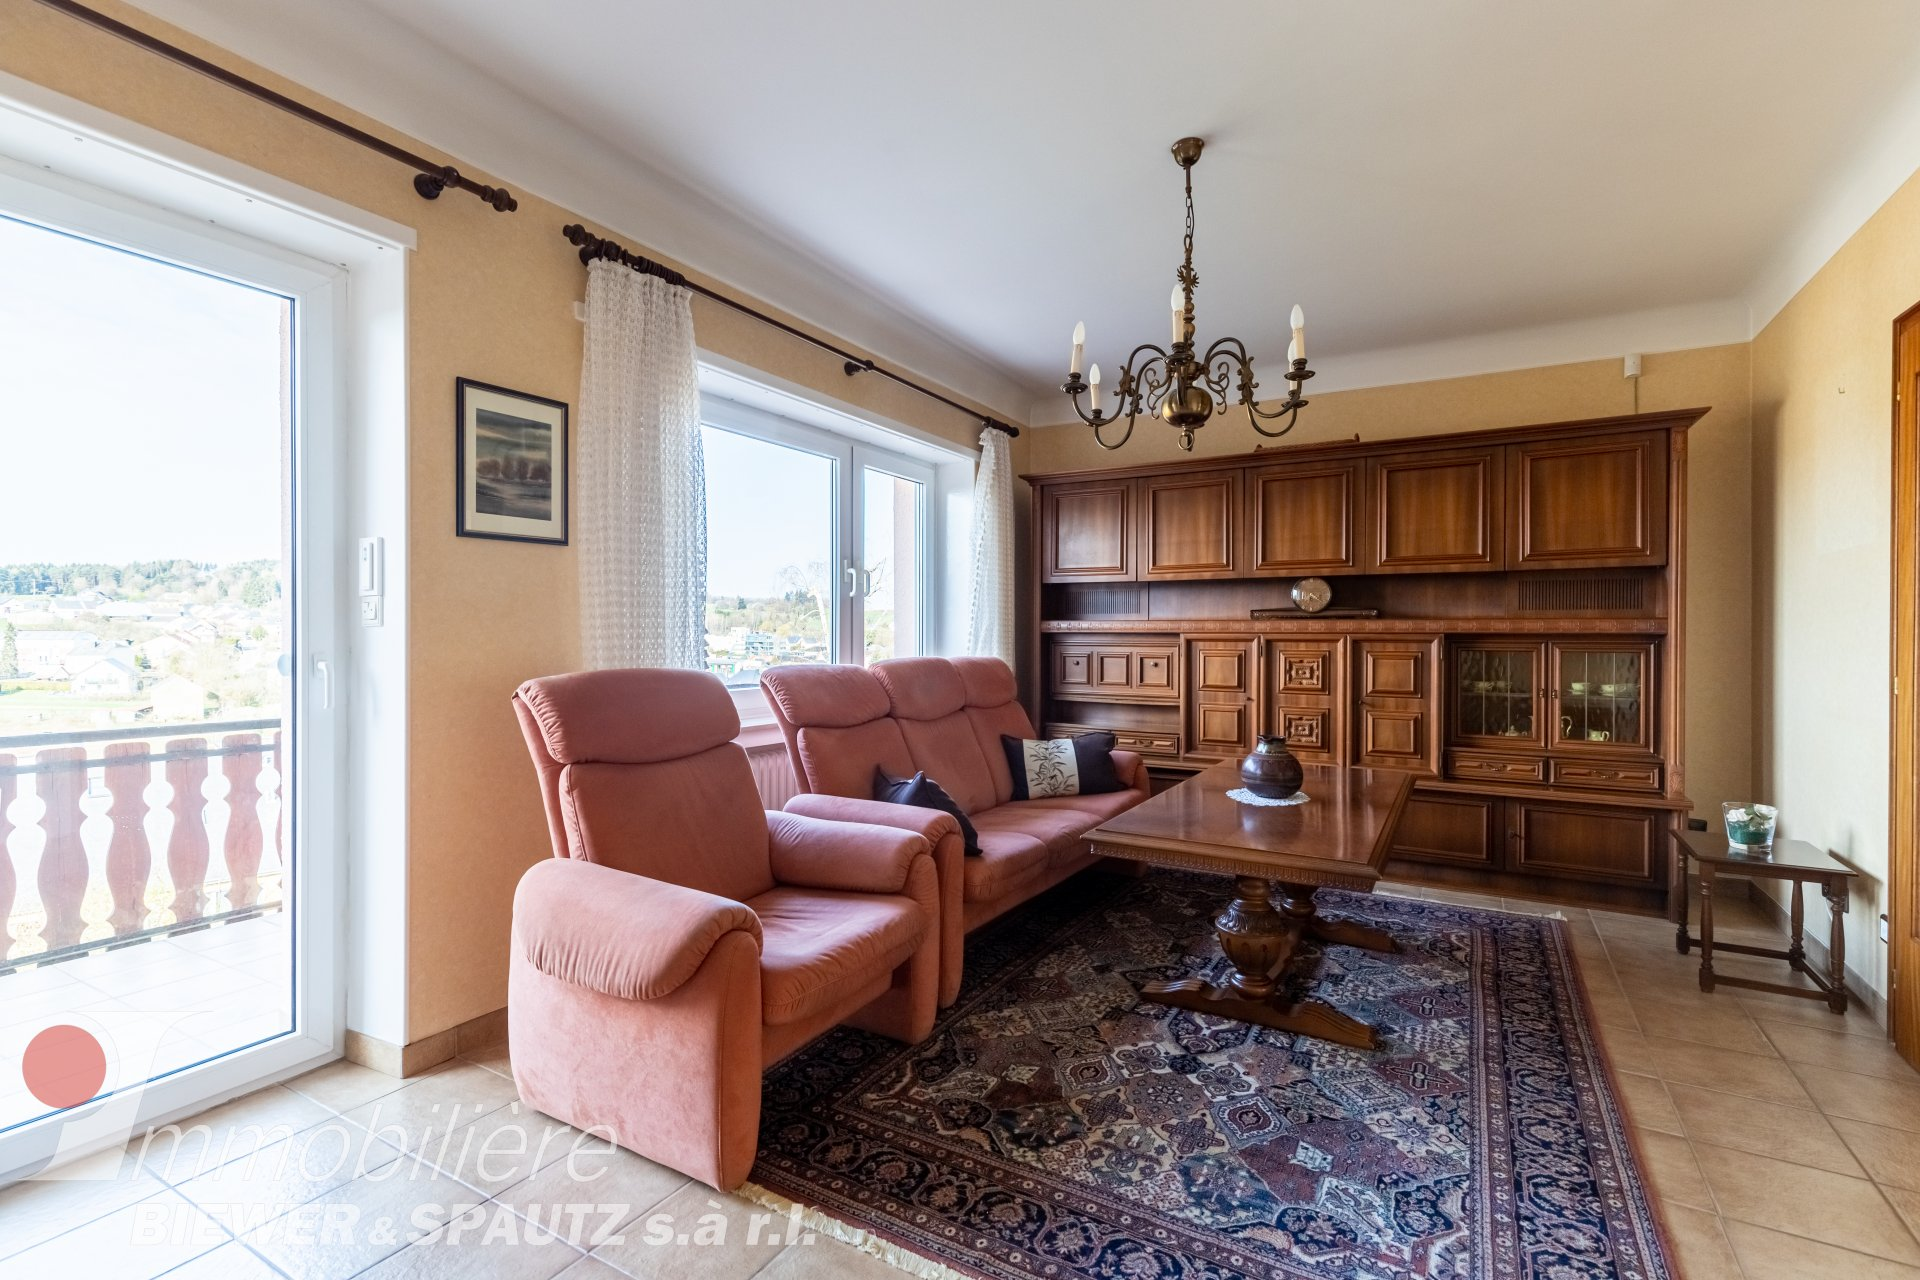 UNDER SALES AGREEMENT - house with 3 bedrooms in Junglinster